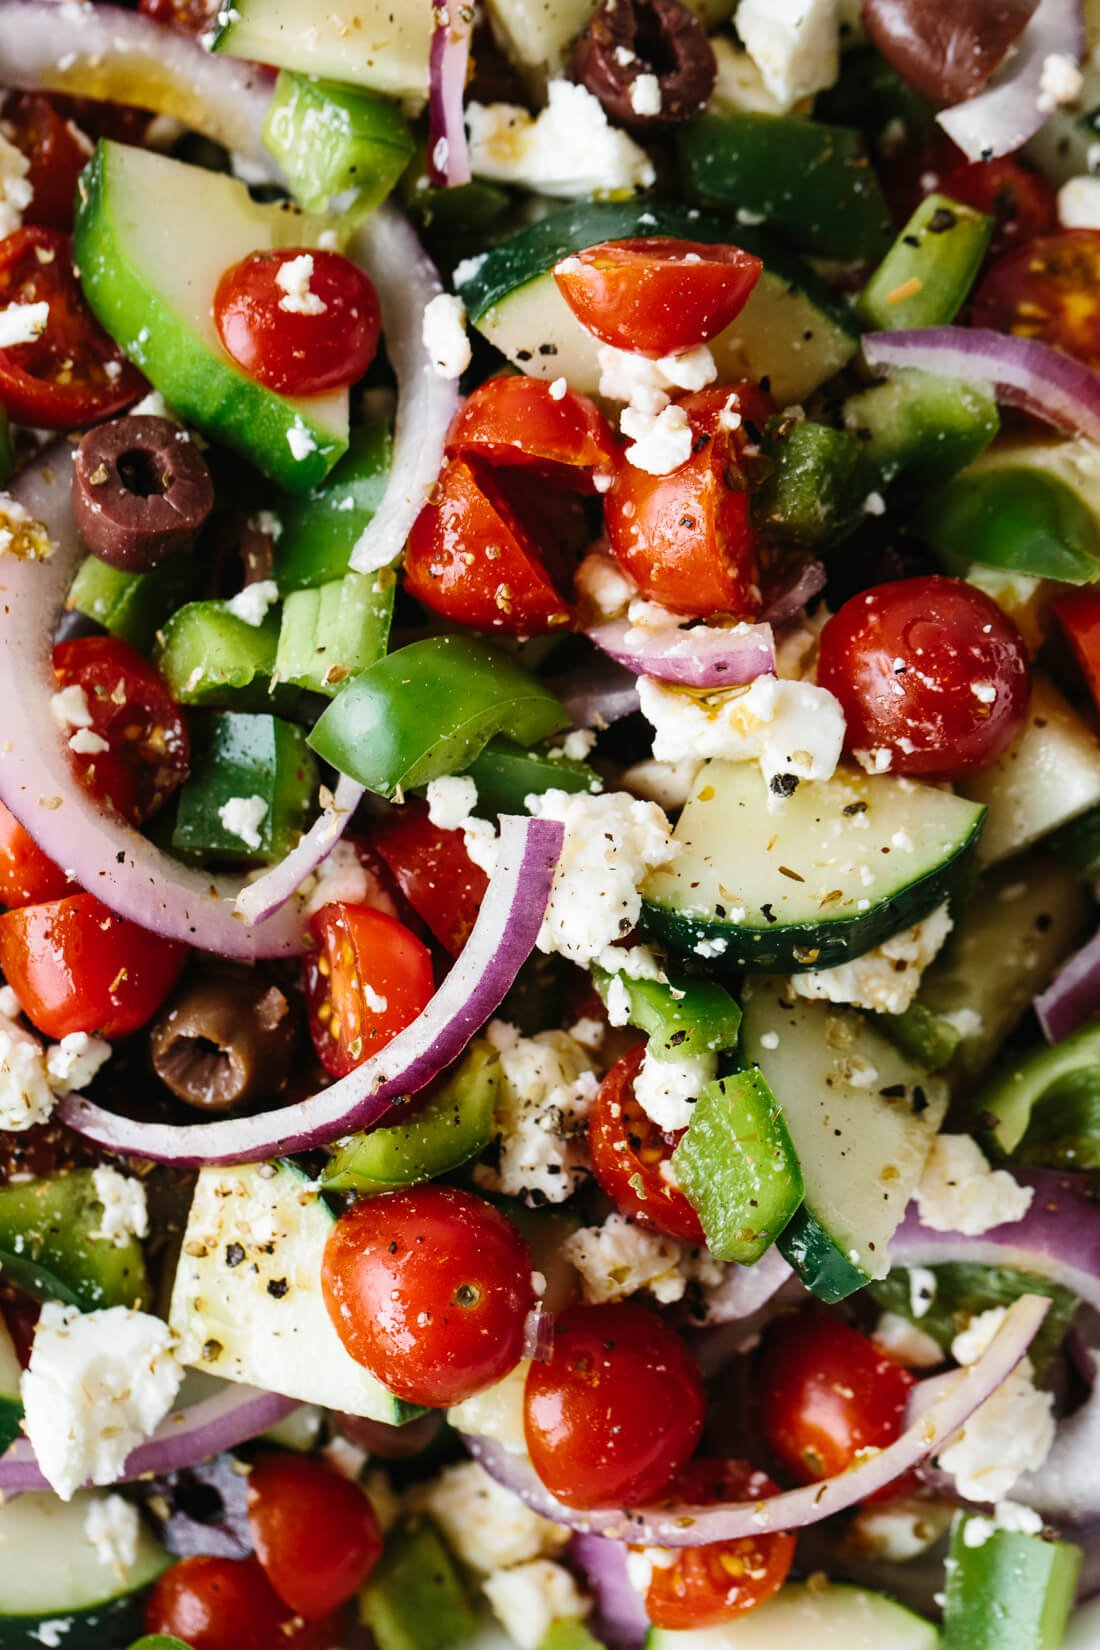 This Greek salad is easy to make and bursting with flavor. With only six ingredients - cucumbers, tomatoes, bell pepper, red onion, olives, feta - it's one of the best healthy salad recipes.